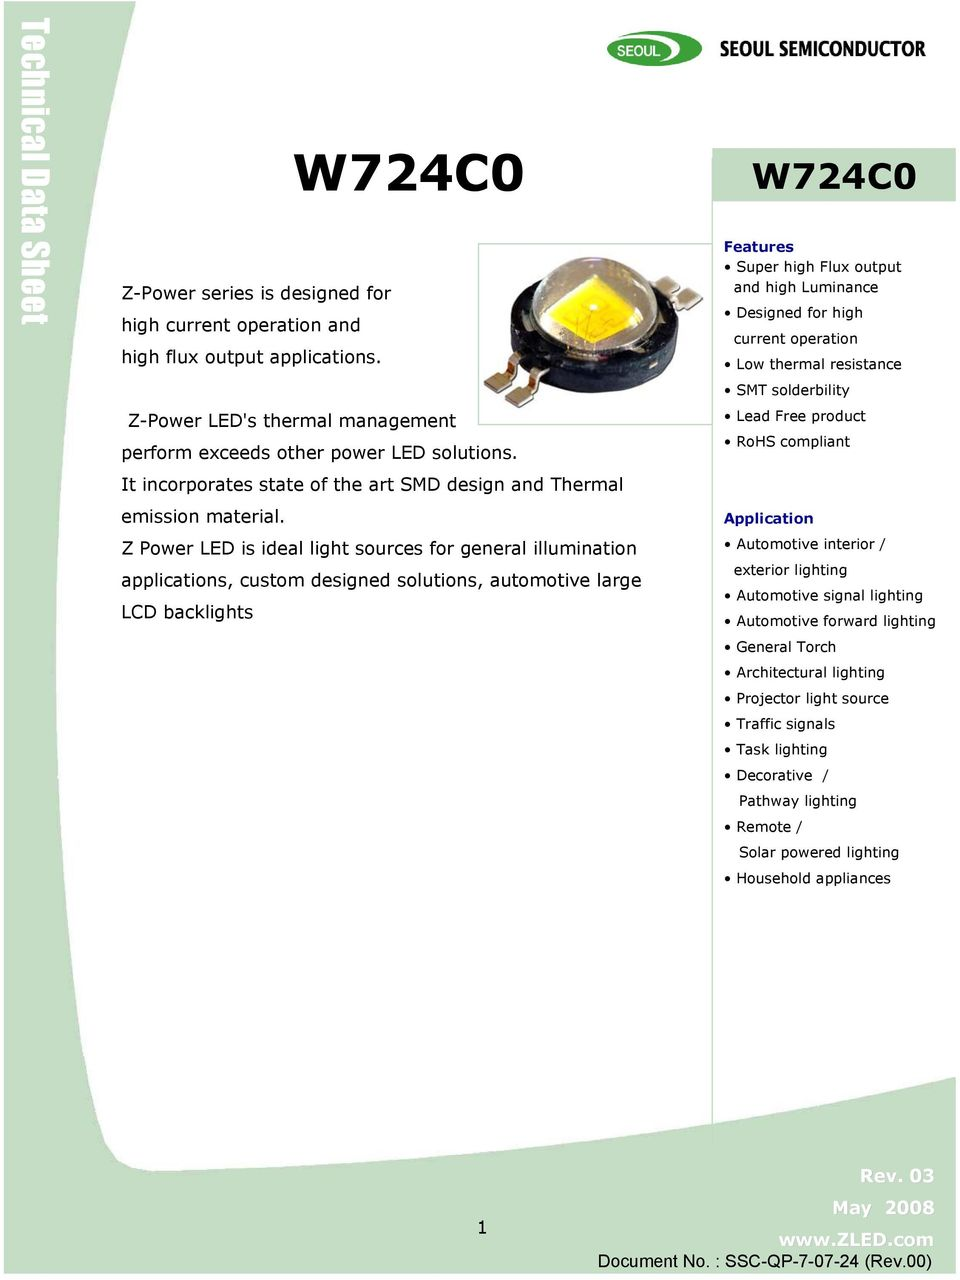 Z Power LED is ideal light sources for general illumination applications, custom designed solutions, automotive large LCD backlights W724C0 Features Super high Flux output and high Luminance Designed